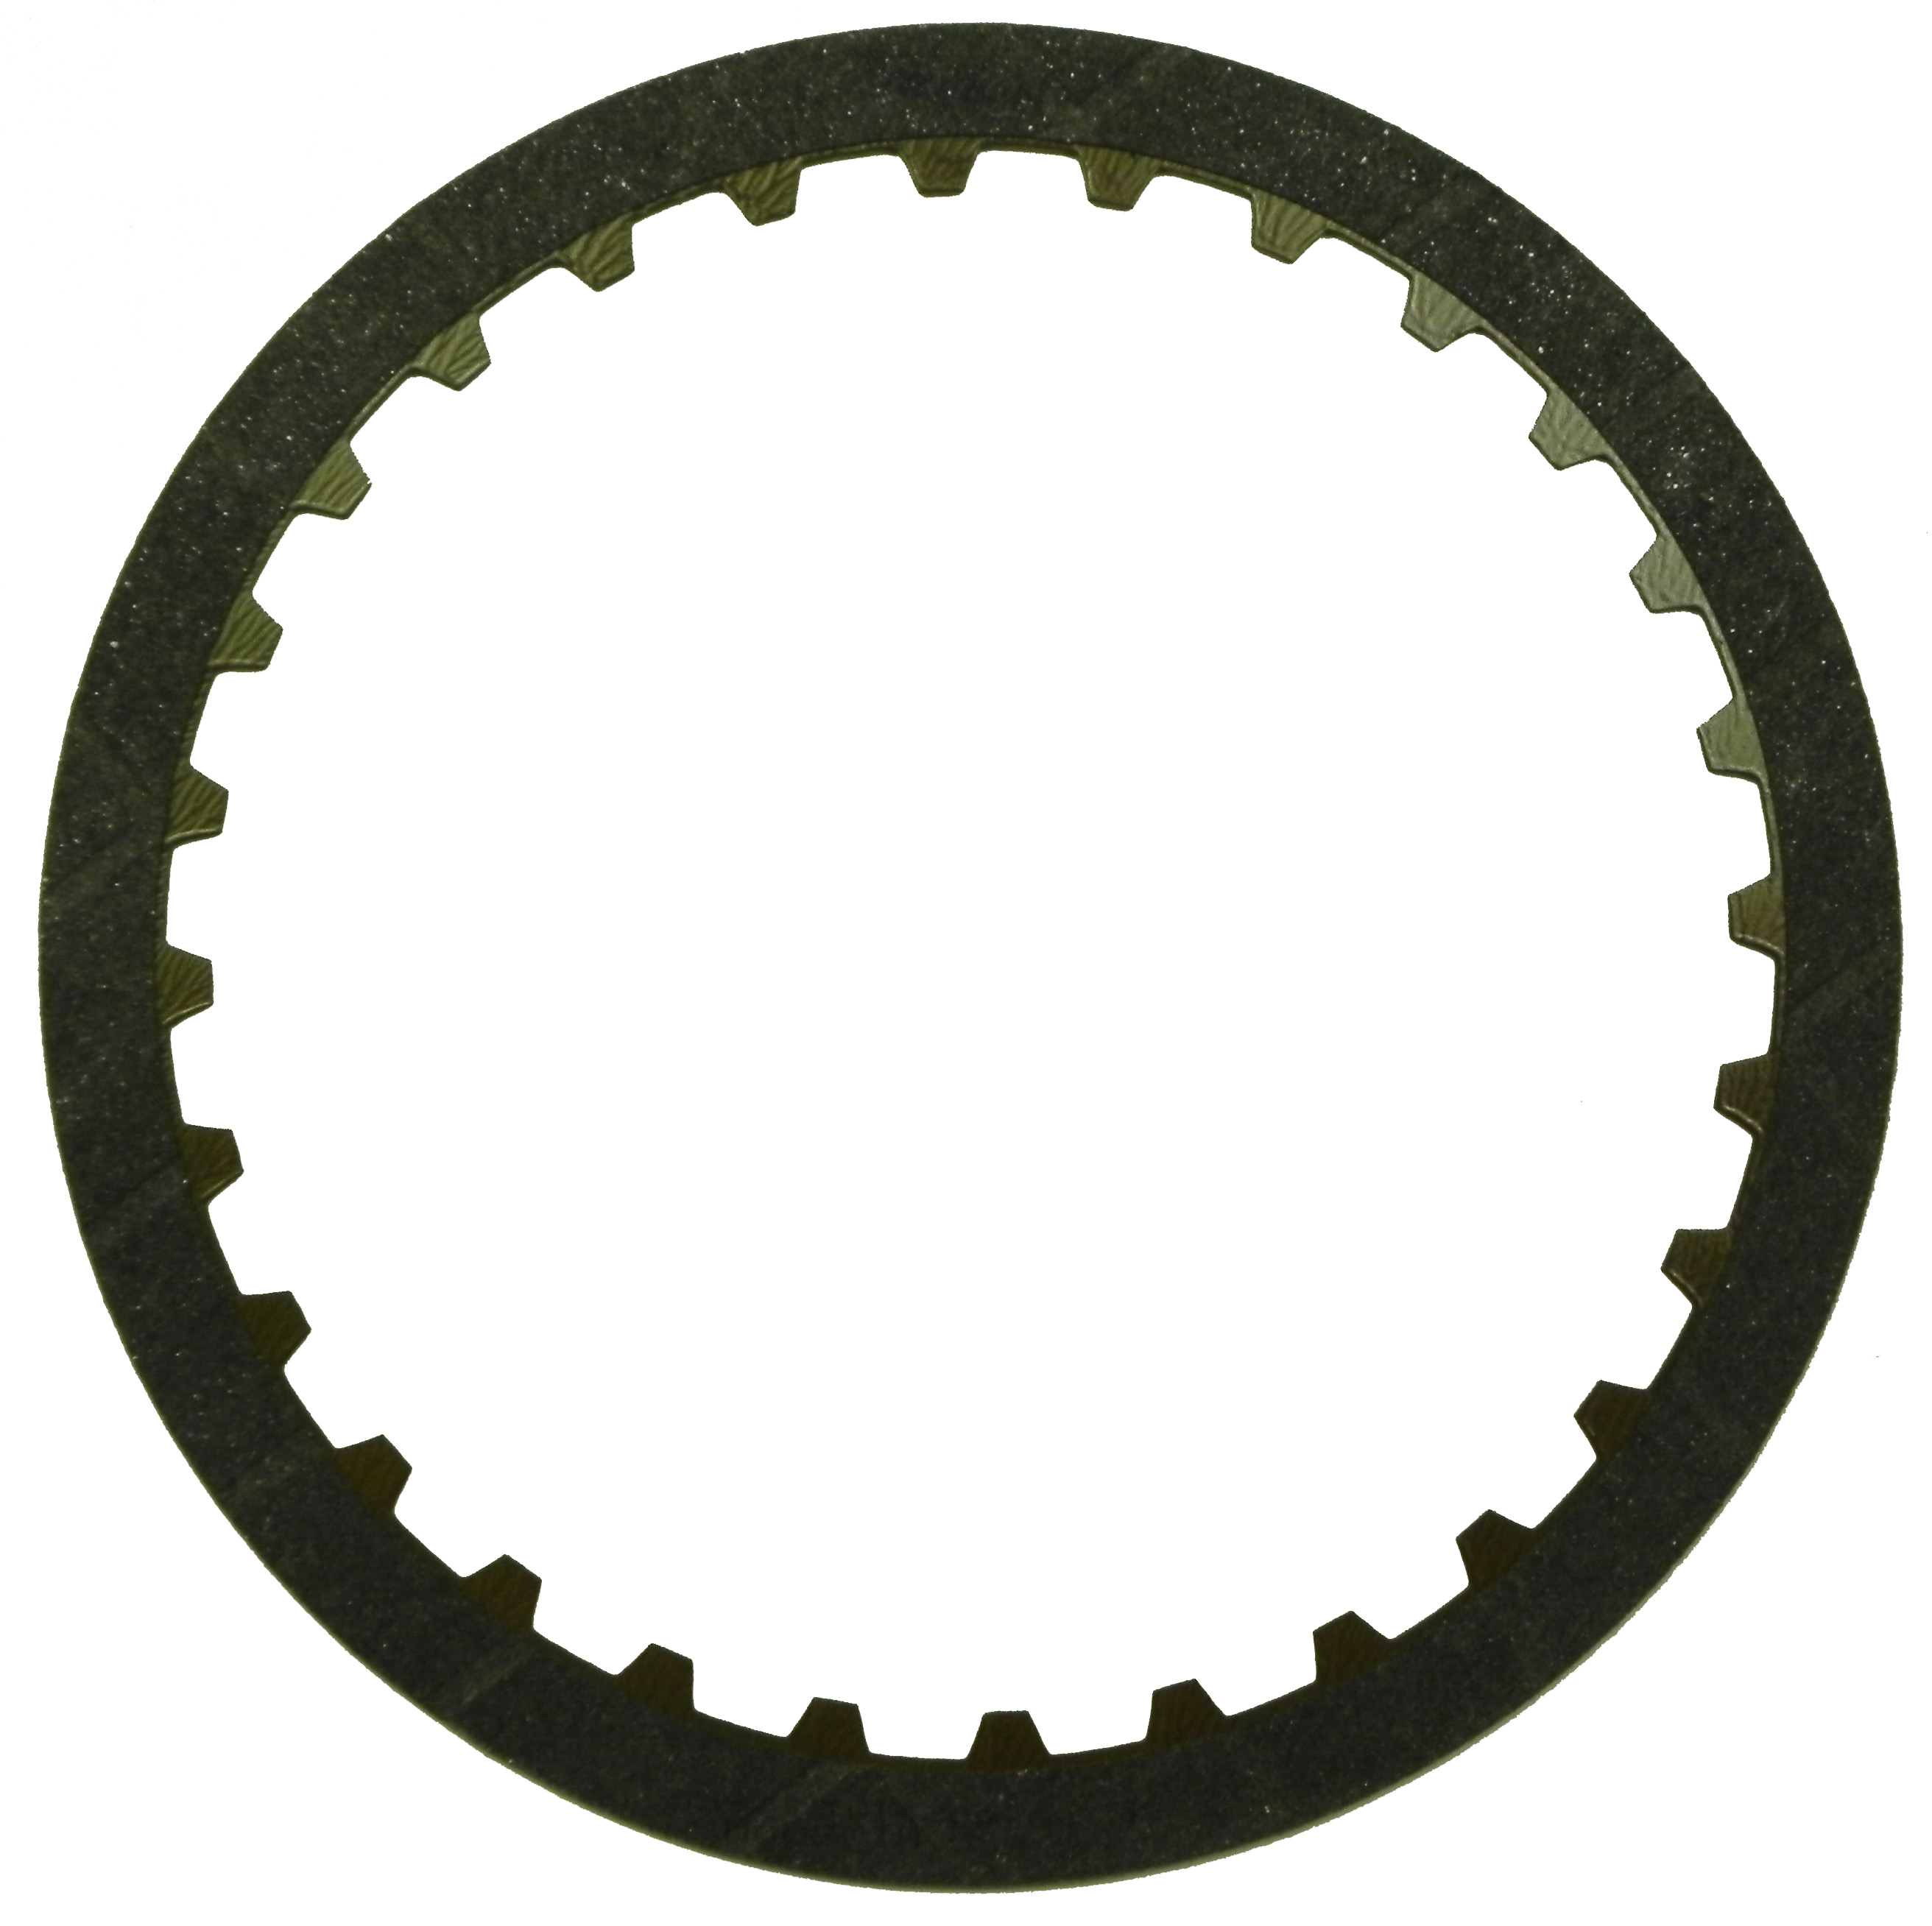 R559775 | 1990-1997 Friction Clutch Plate High Energy Overdrive Brake BS Clutch (Waved) High Energy